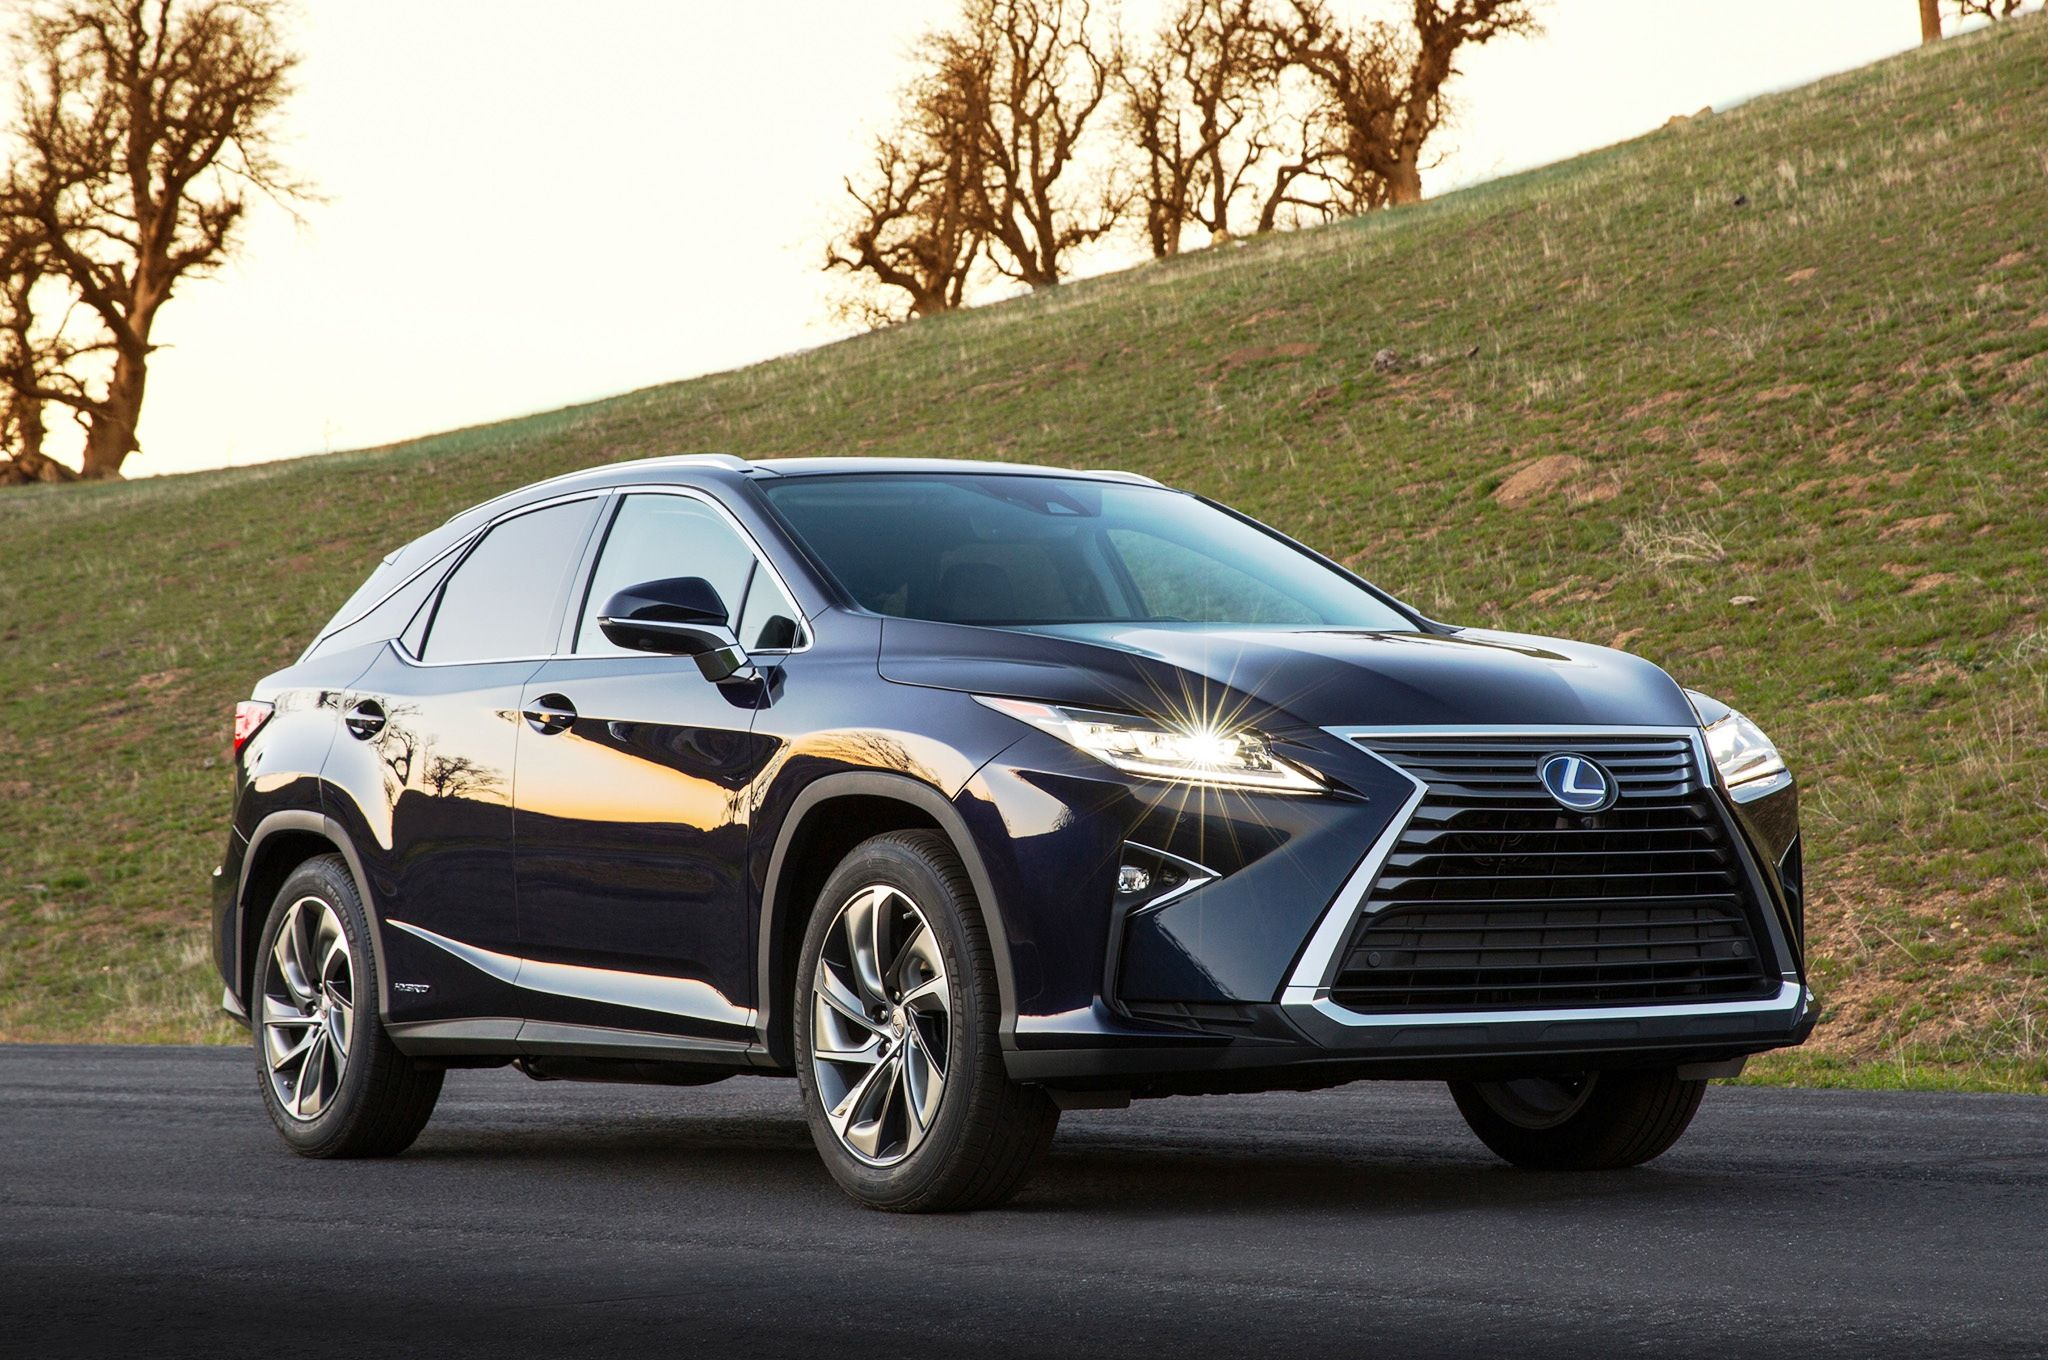 New 2016 Lexus Suv Prices MSRP Specs Reviews Price list and